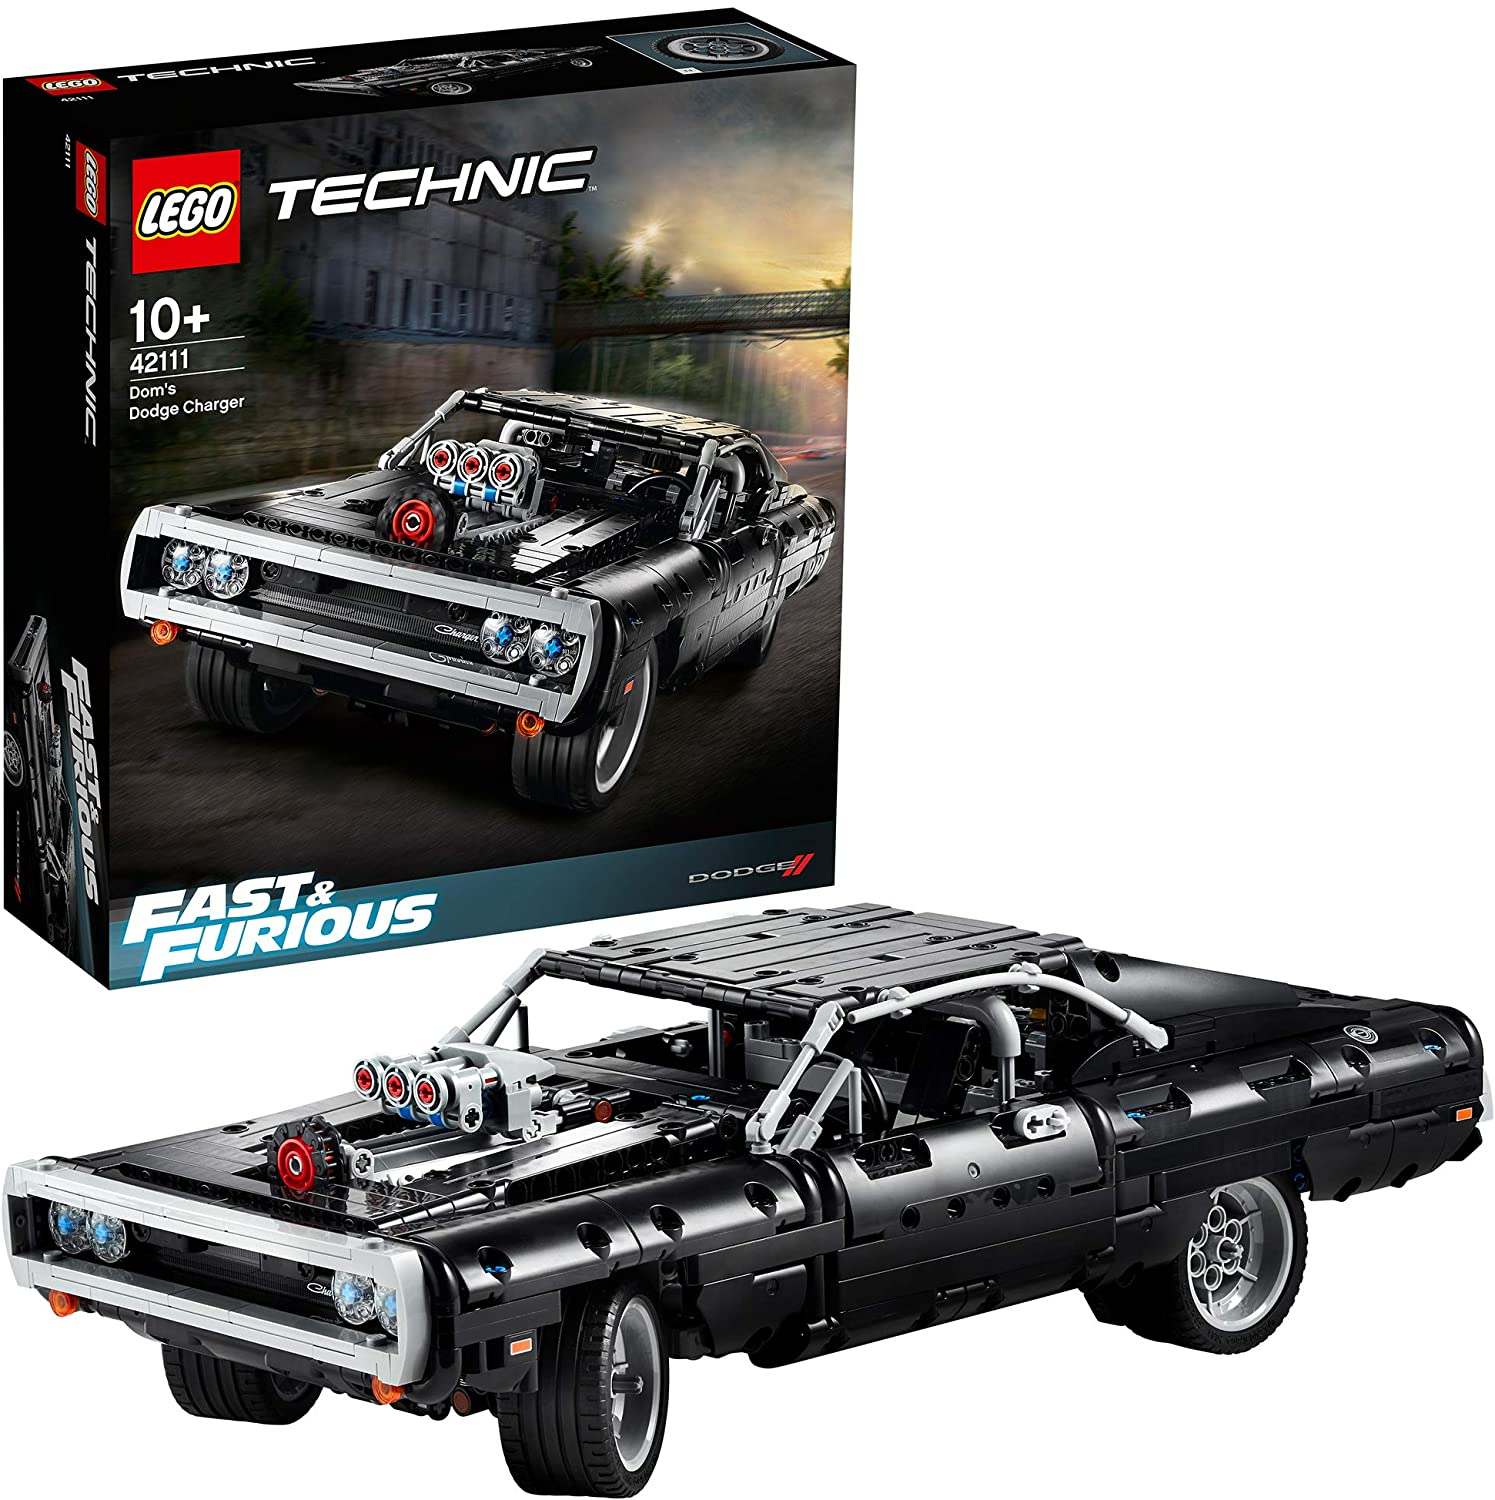 LEGO Technic Fast and Furious Doms Dodge Charger Racing Car